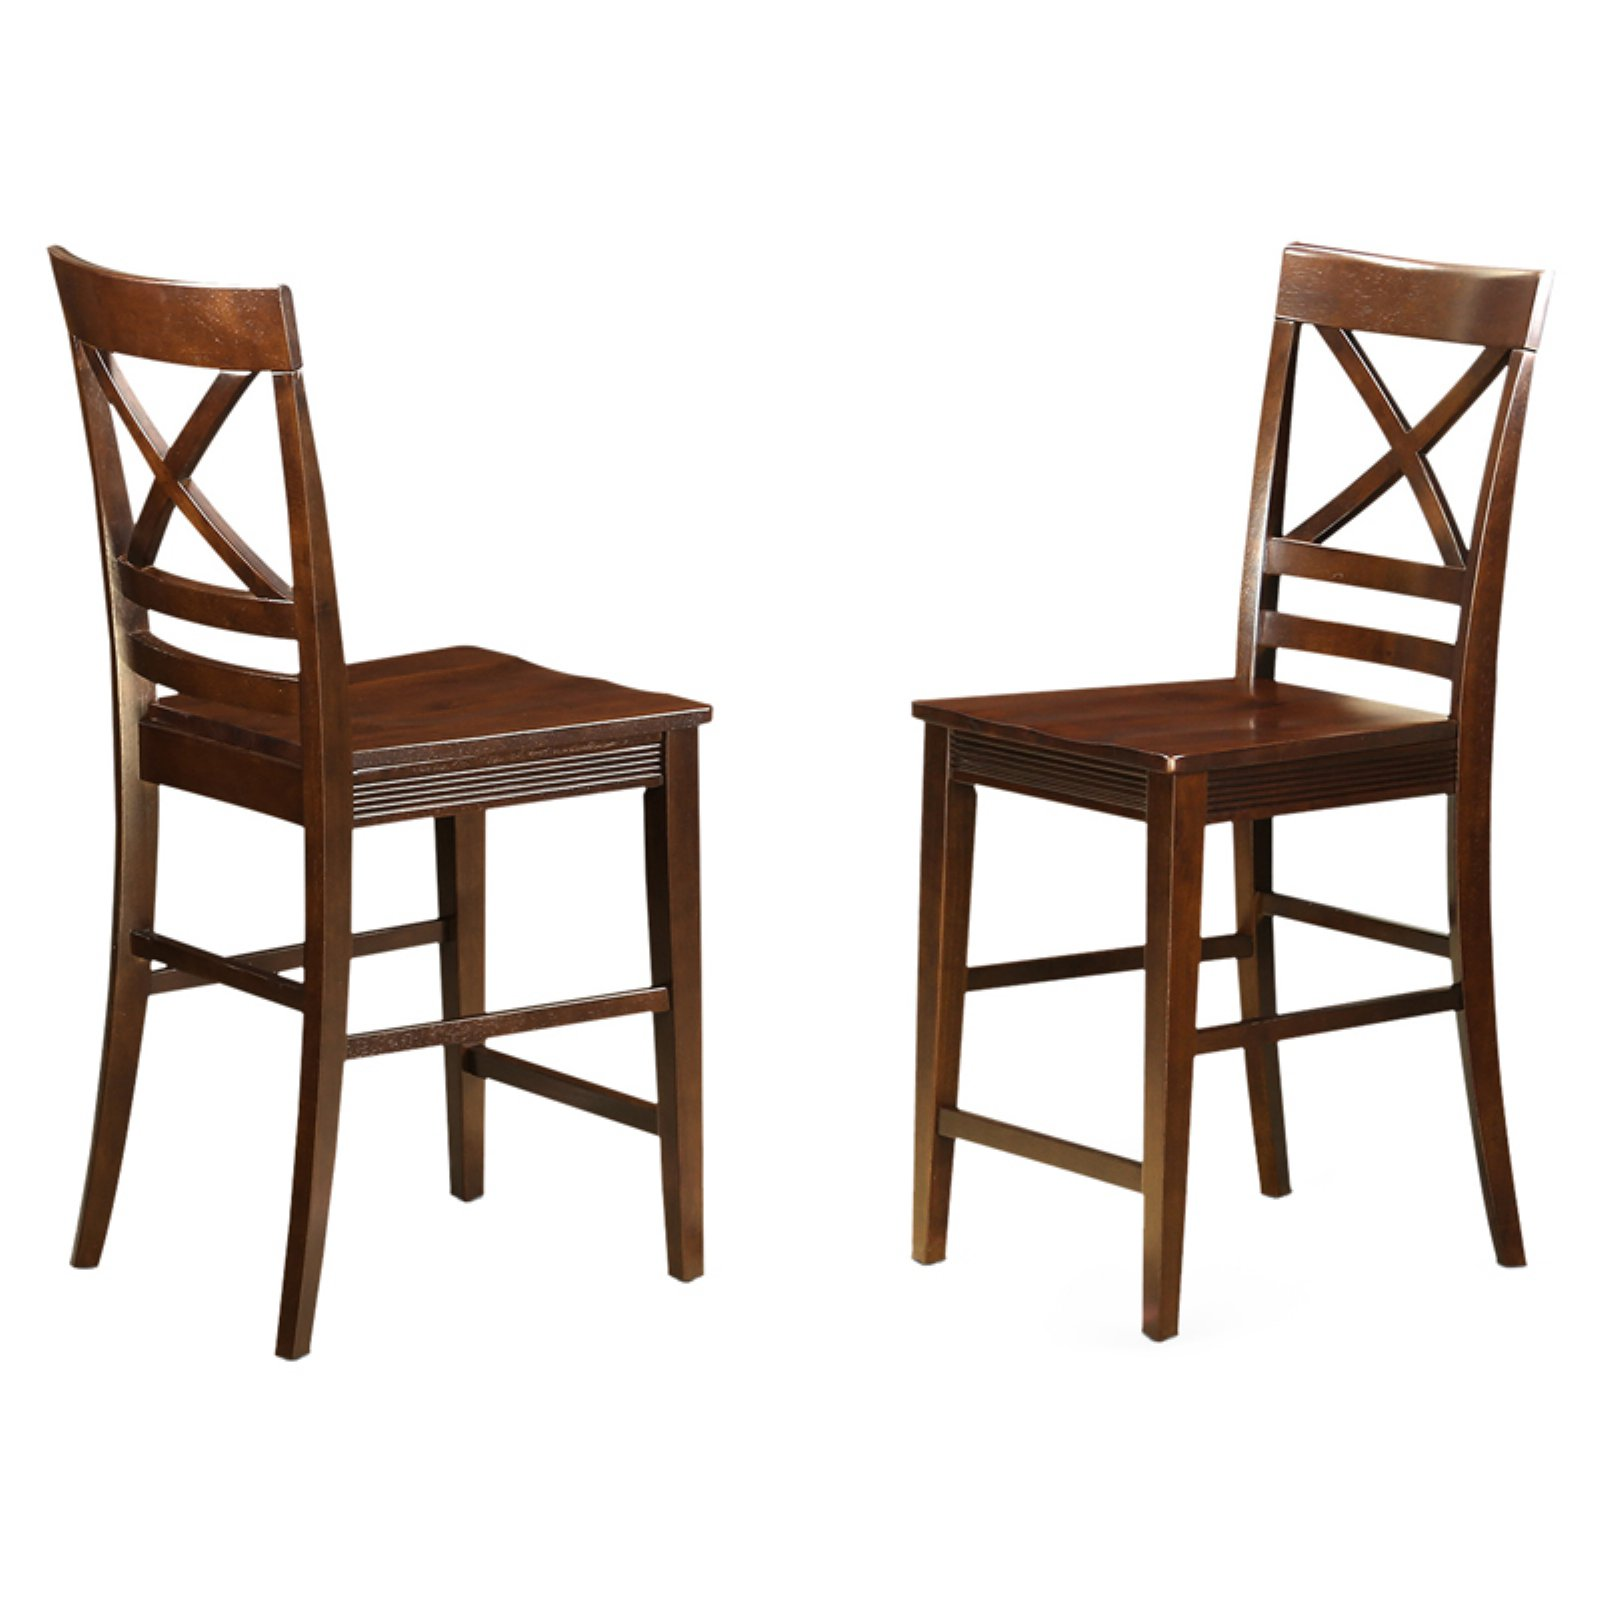 East West Furniture Quincy X-Back Counter Height Dining Chair with Wooden Seat - Set of 2